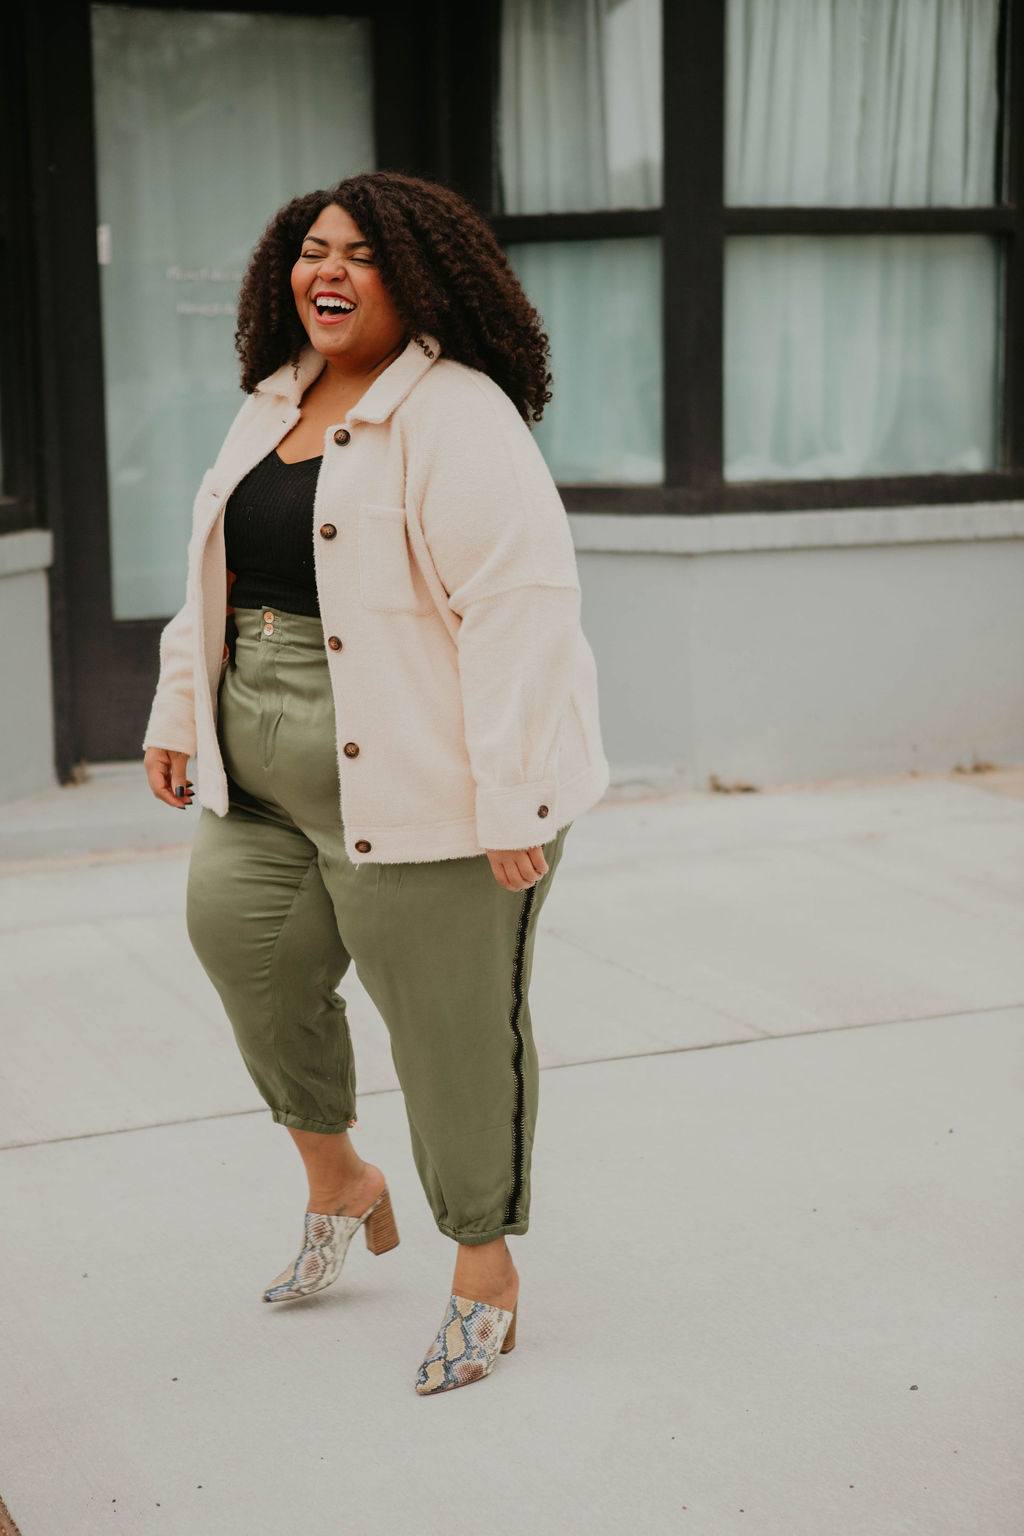 Joggers & shackets are nailing the outfit game. This shacket from Anthro isn't plaid, yet still a classic & the joggers are comfy — on trend for 2020.